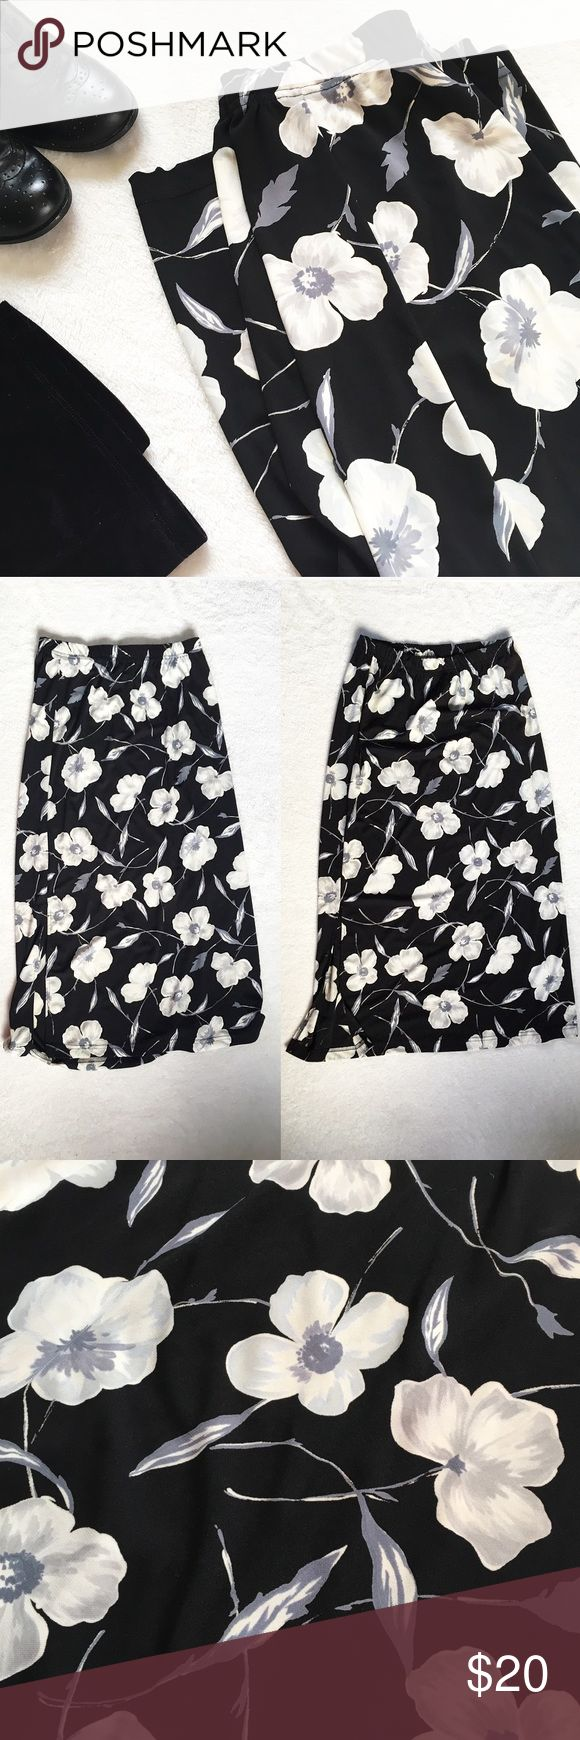 """Vintage 90s Floral High Waist Grunge Skirt 🌸 Vintage 90s High Waisted Floral Skirt by Stephanie Parks  🌸 Has a pattern of gray and white flowers and leaves on a black background, shown in 3rd photo  🌸 Loose fitting   🌸 Has an elastic waistband  🌸 Has a 13"""" slit on each side of the skirt  🌸 Size medium   Measurements: Waist: 28""""  Hips: 38"""" Length: 34.5""""  Keywords: 90's, 1990s style, high-waist, high waisted, high waist, mid waist, 90s grunge, 90's grunge, grungey, witchy, witch, wiccan…"""